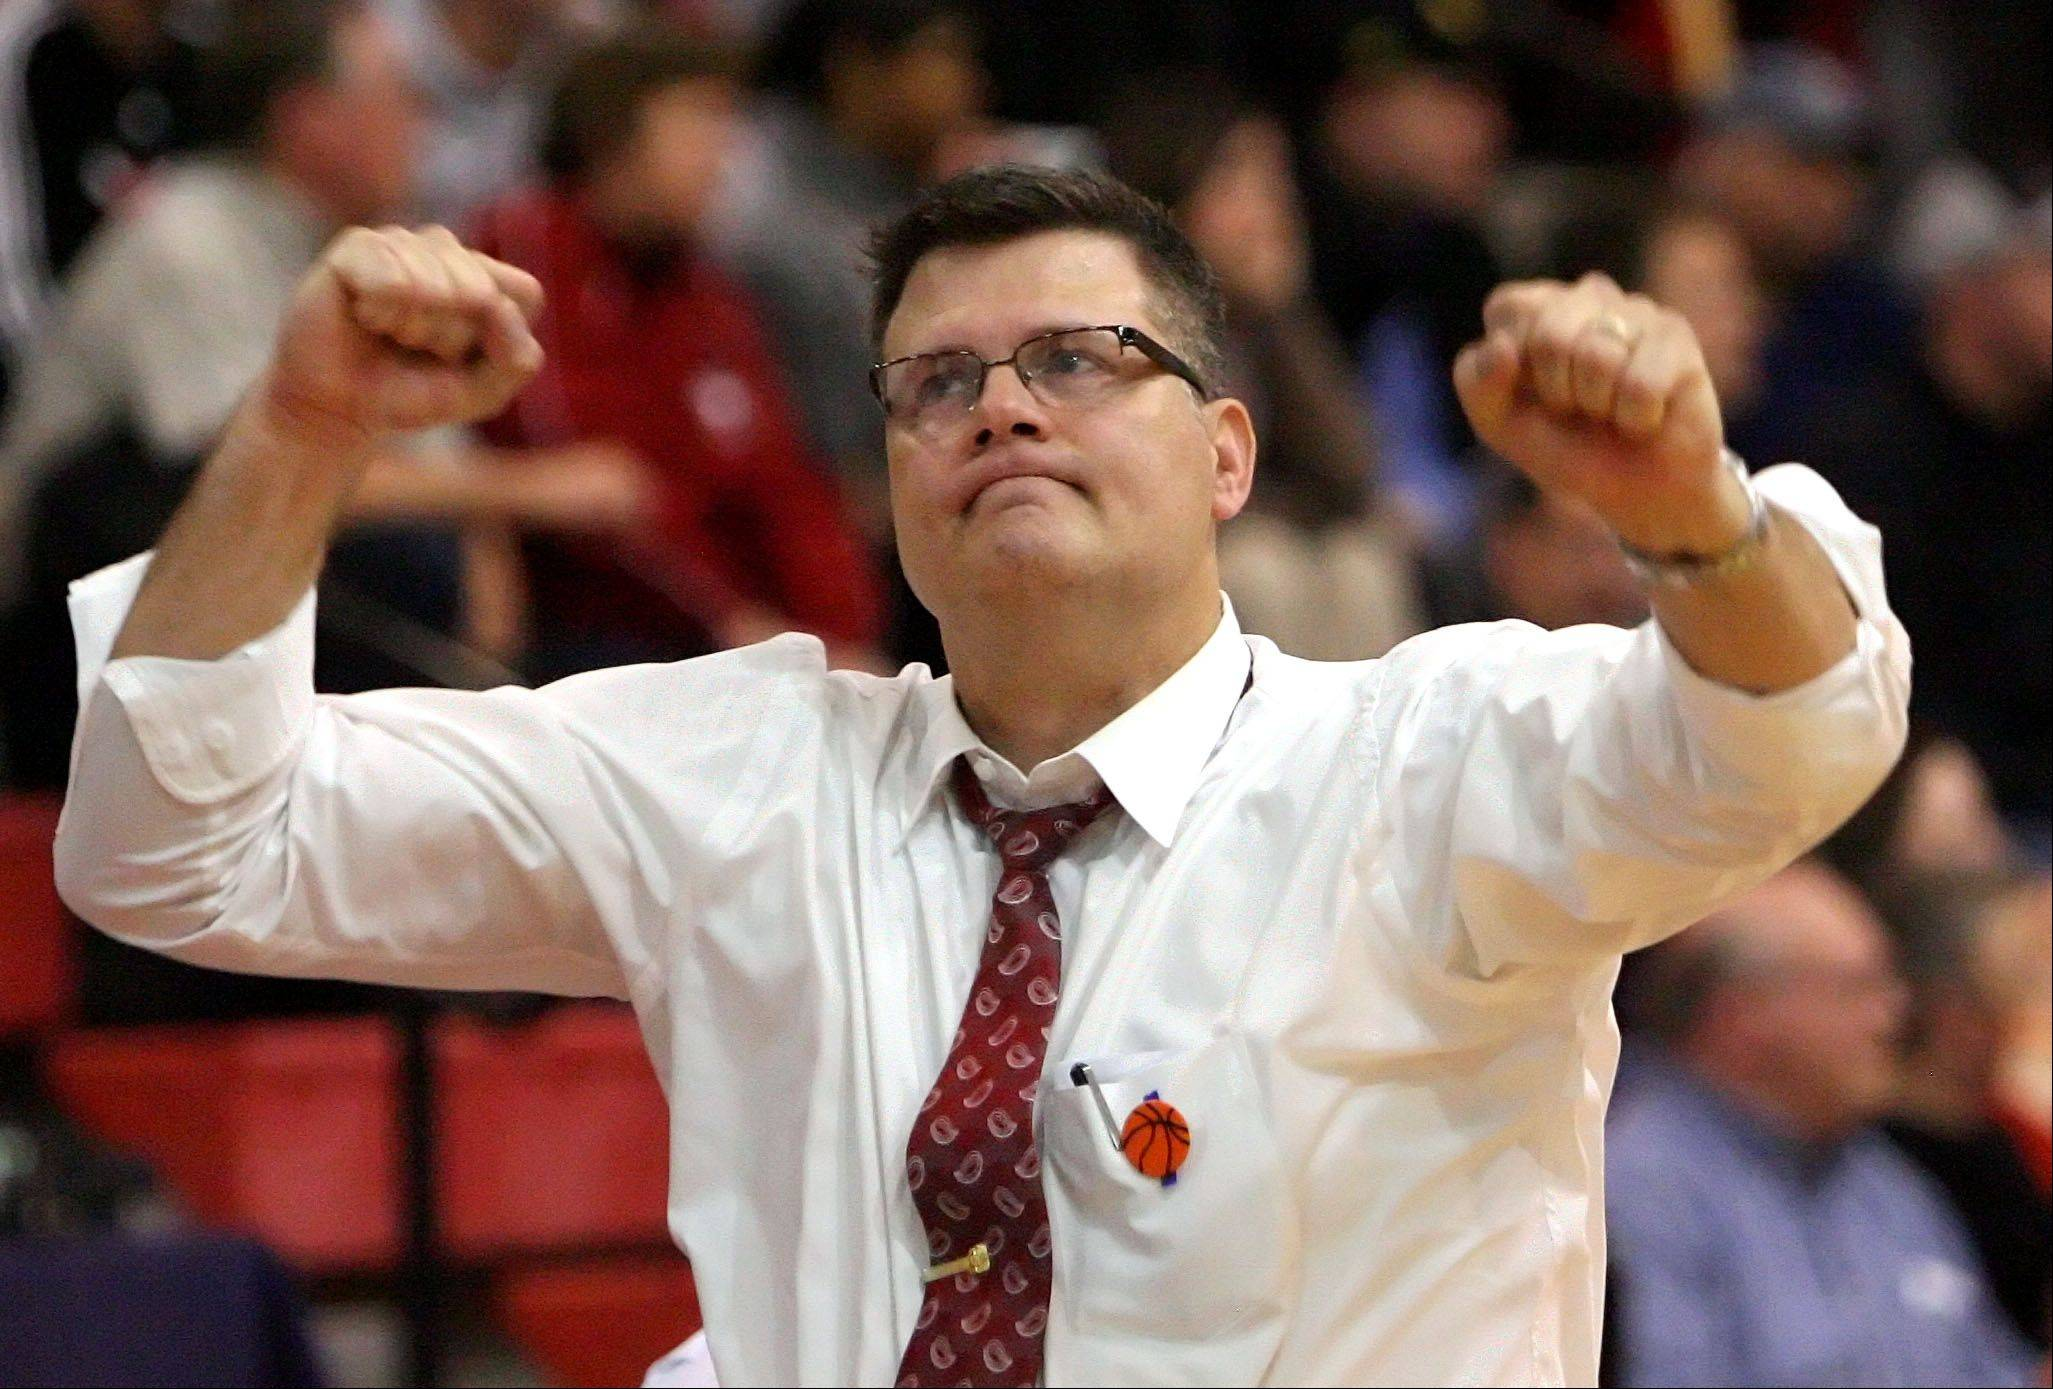 Mundelein's Dick Knar, here celebrating after a sectional semifinal victory, is backing away from coaching at Mundelein.